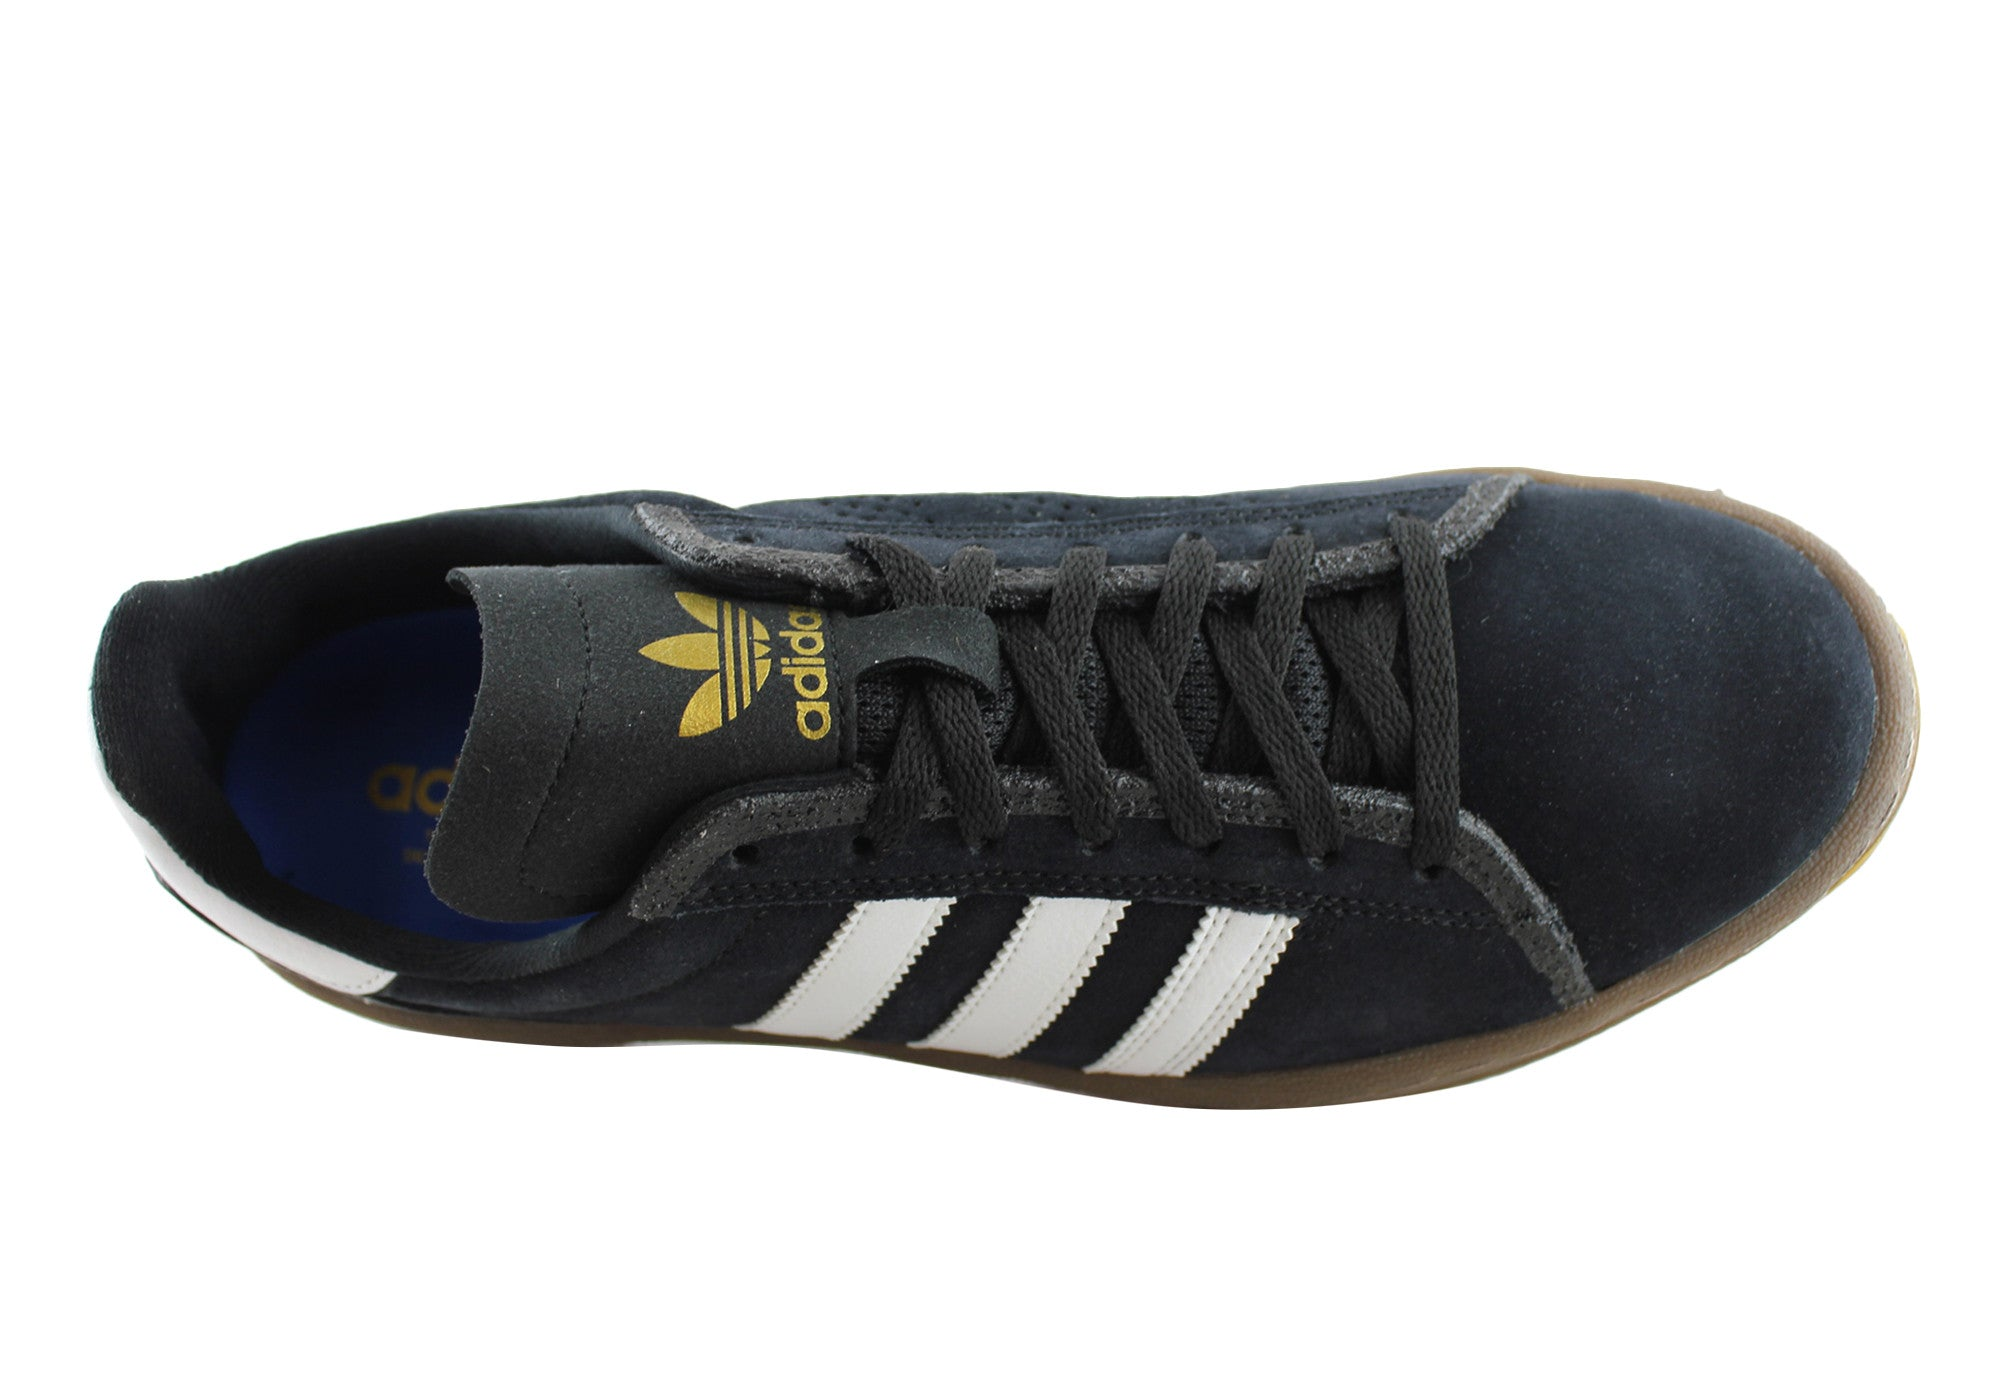 Adidas Originals Campus As Mens Skate Shoes